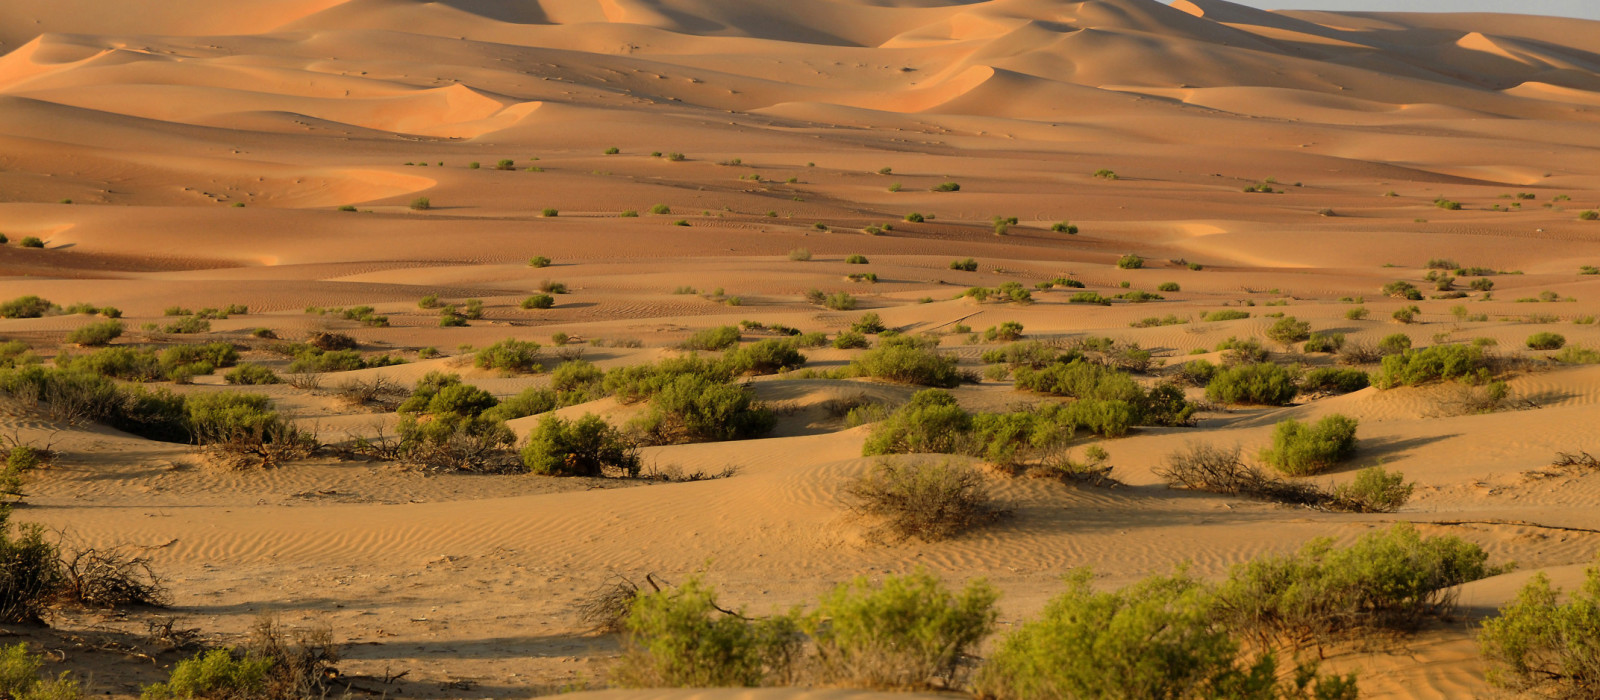 Destination Liwa United Arab Emirates